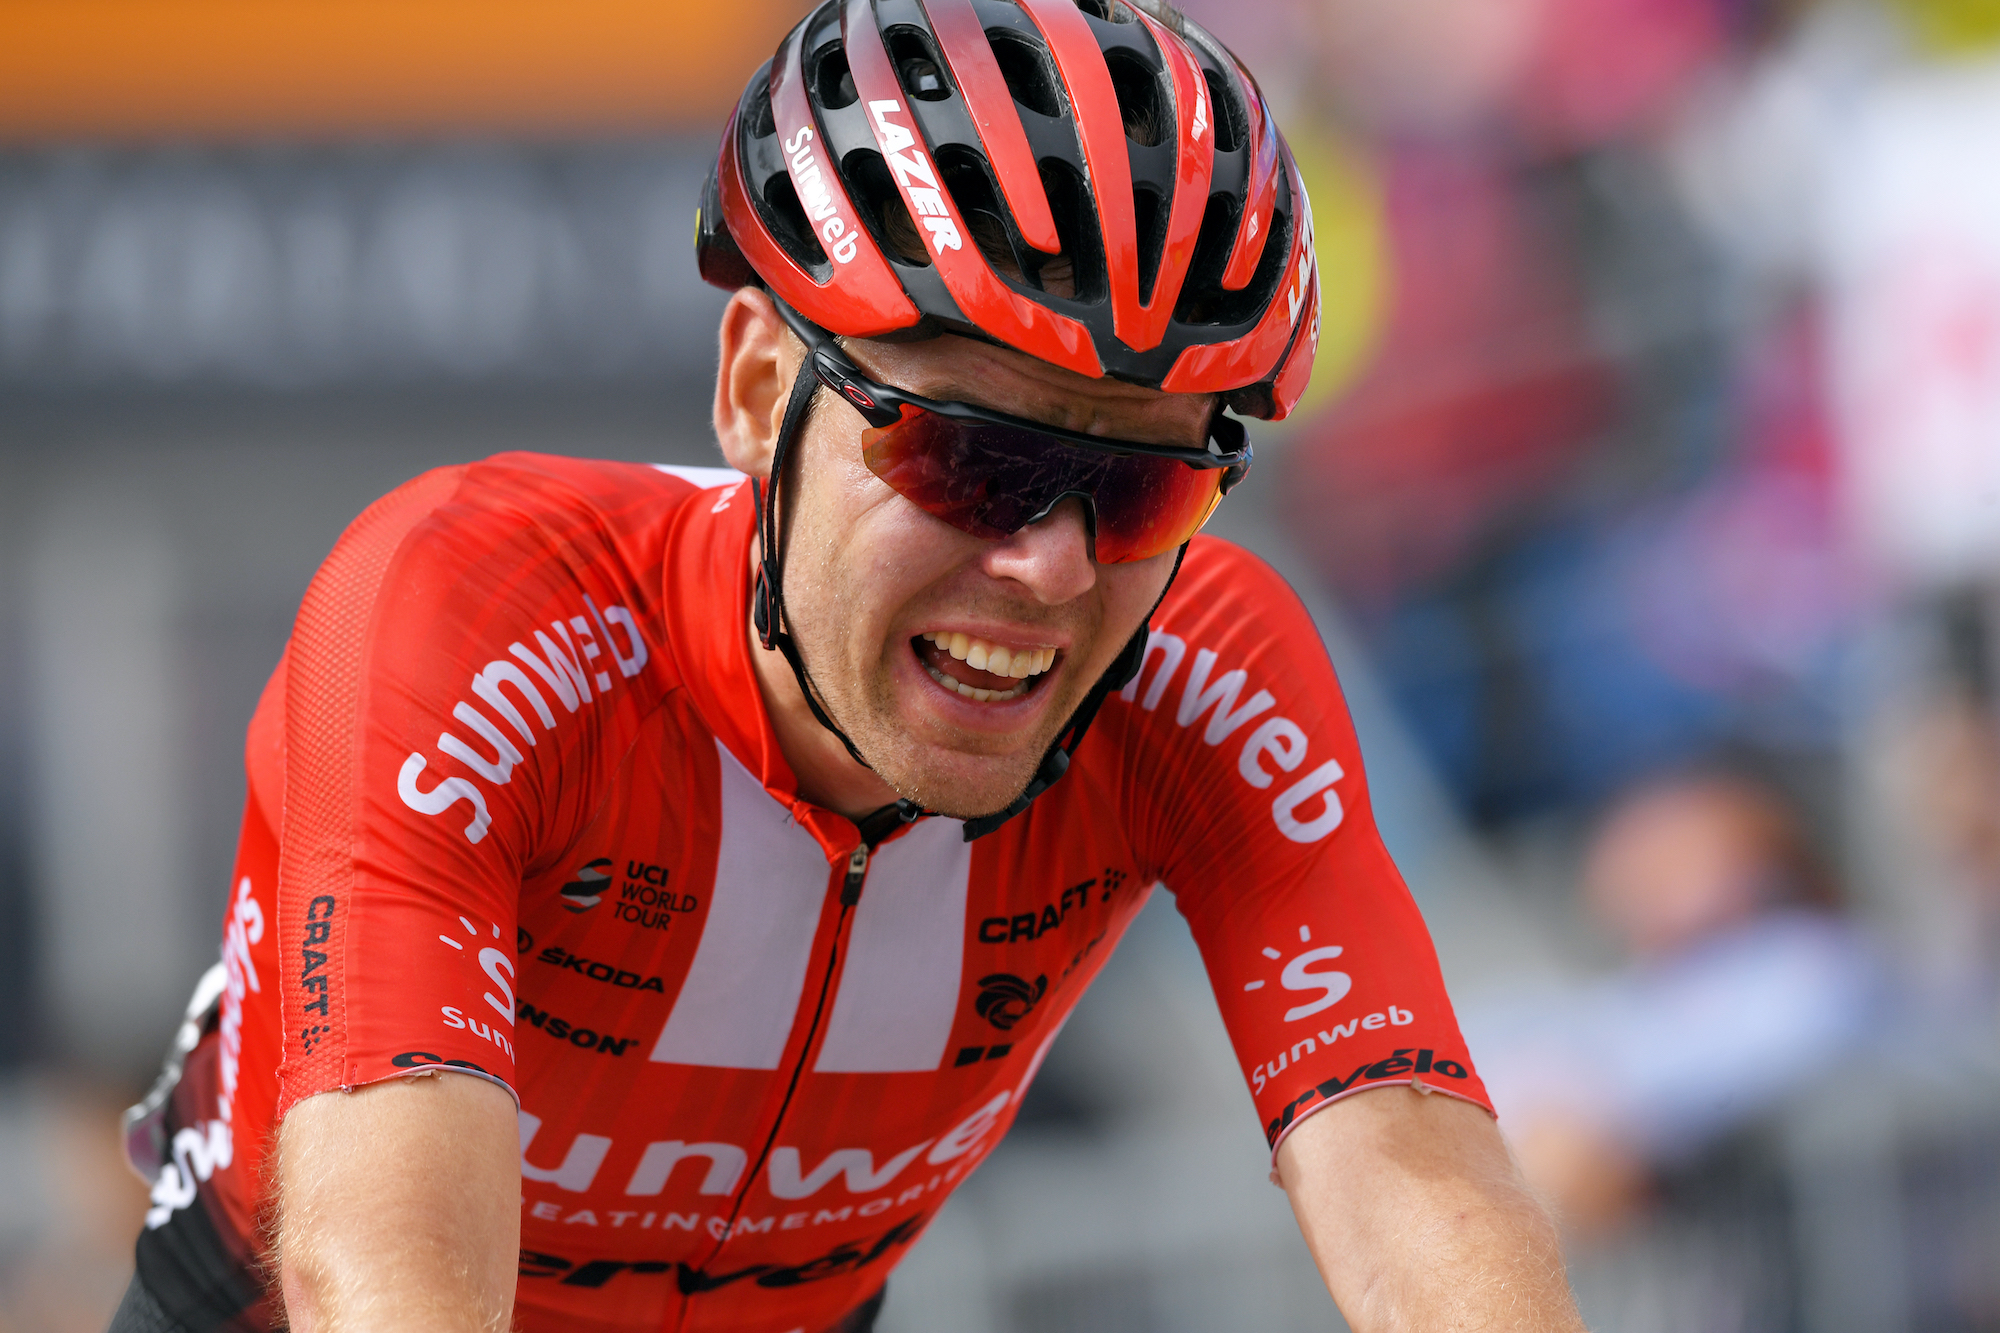 Sunweb rider ready for comeback after testicle injury - Cycling Weekly